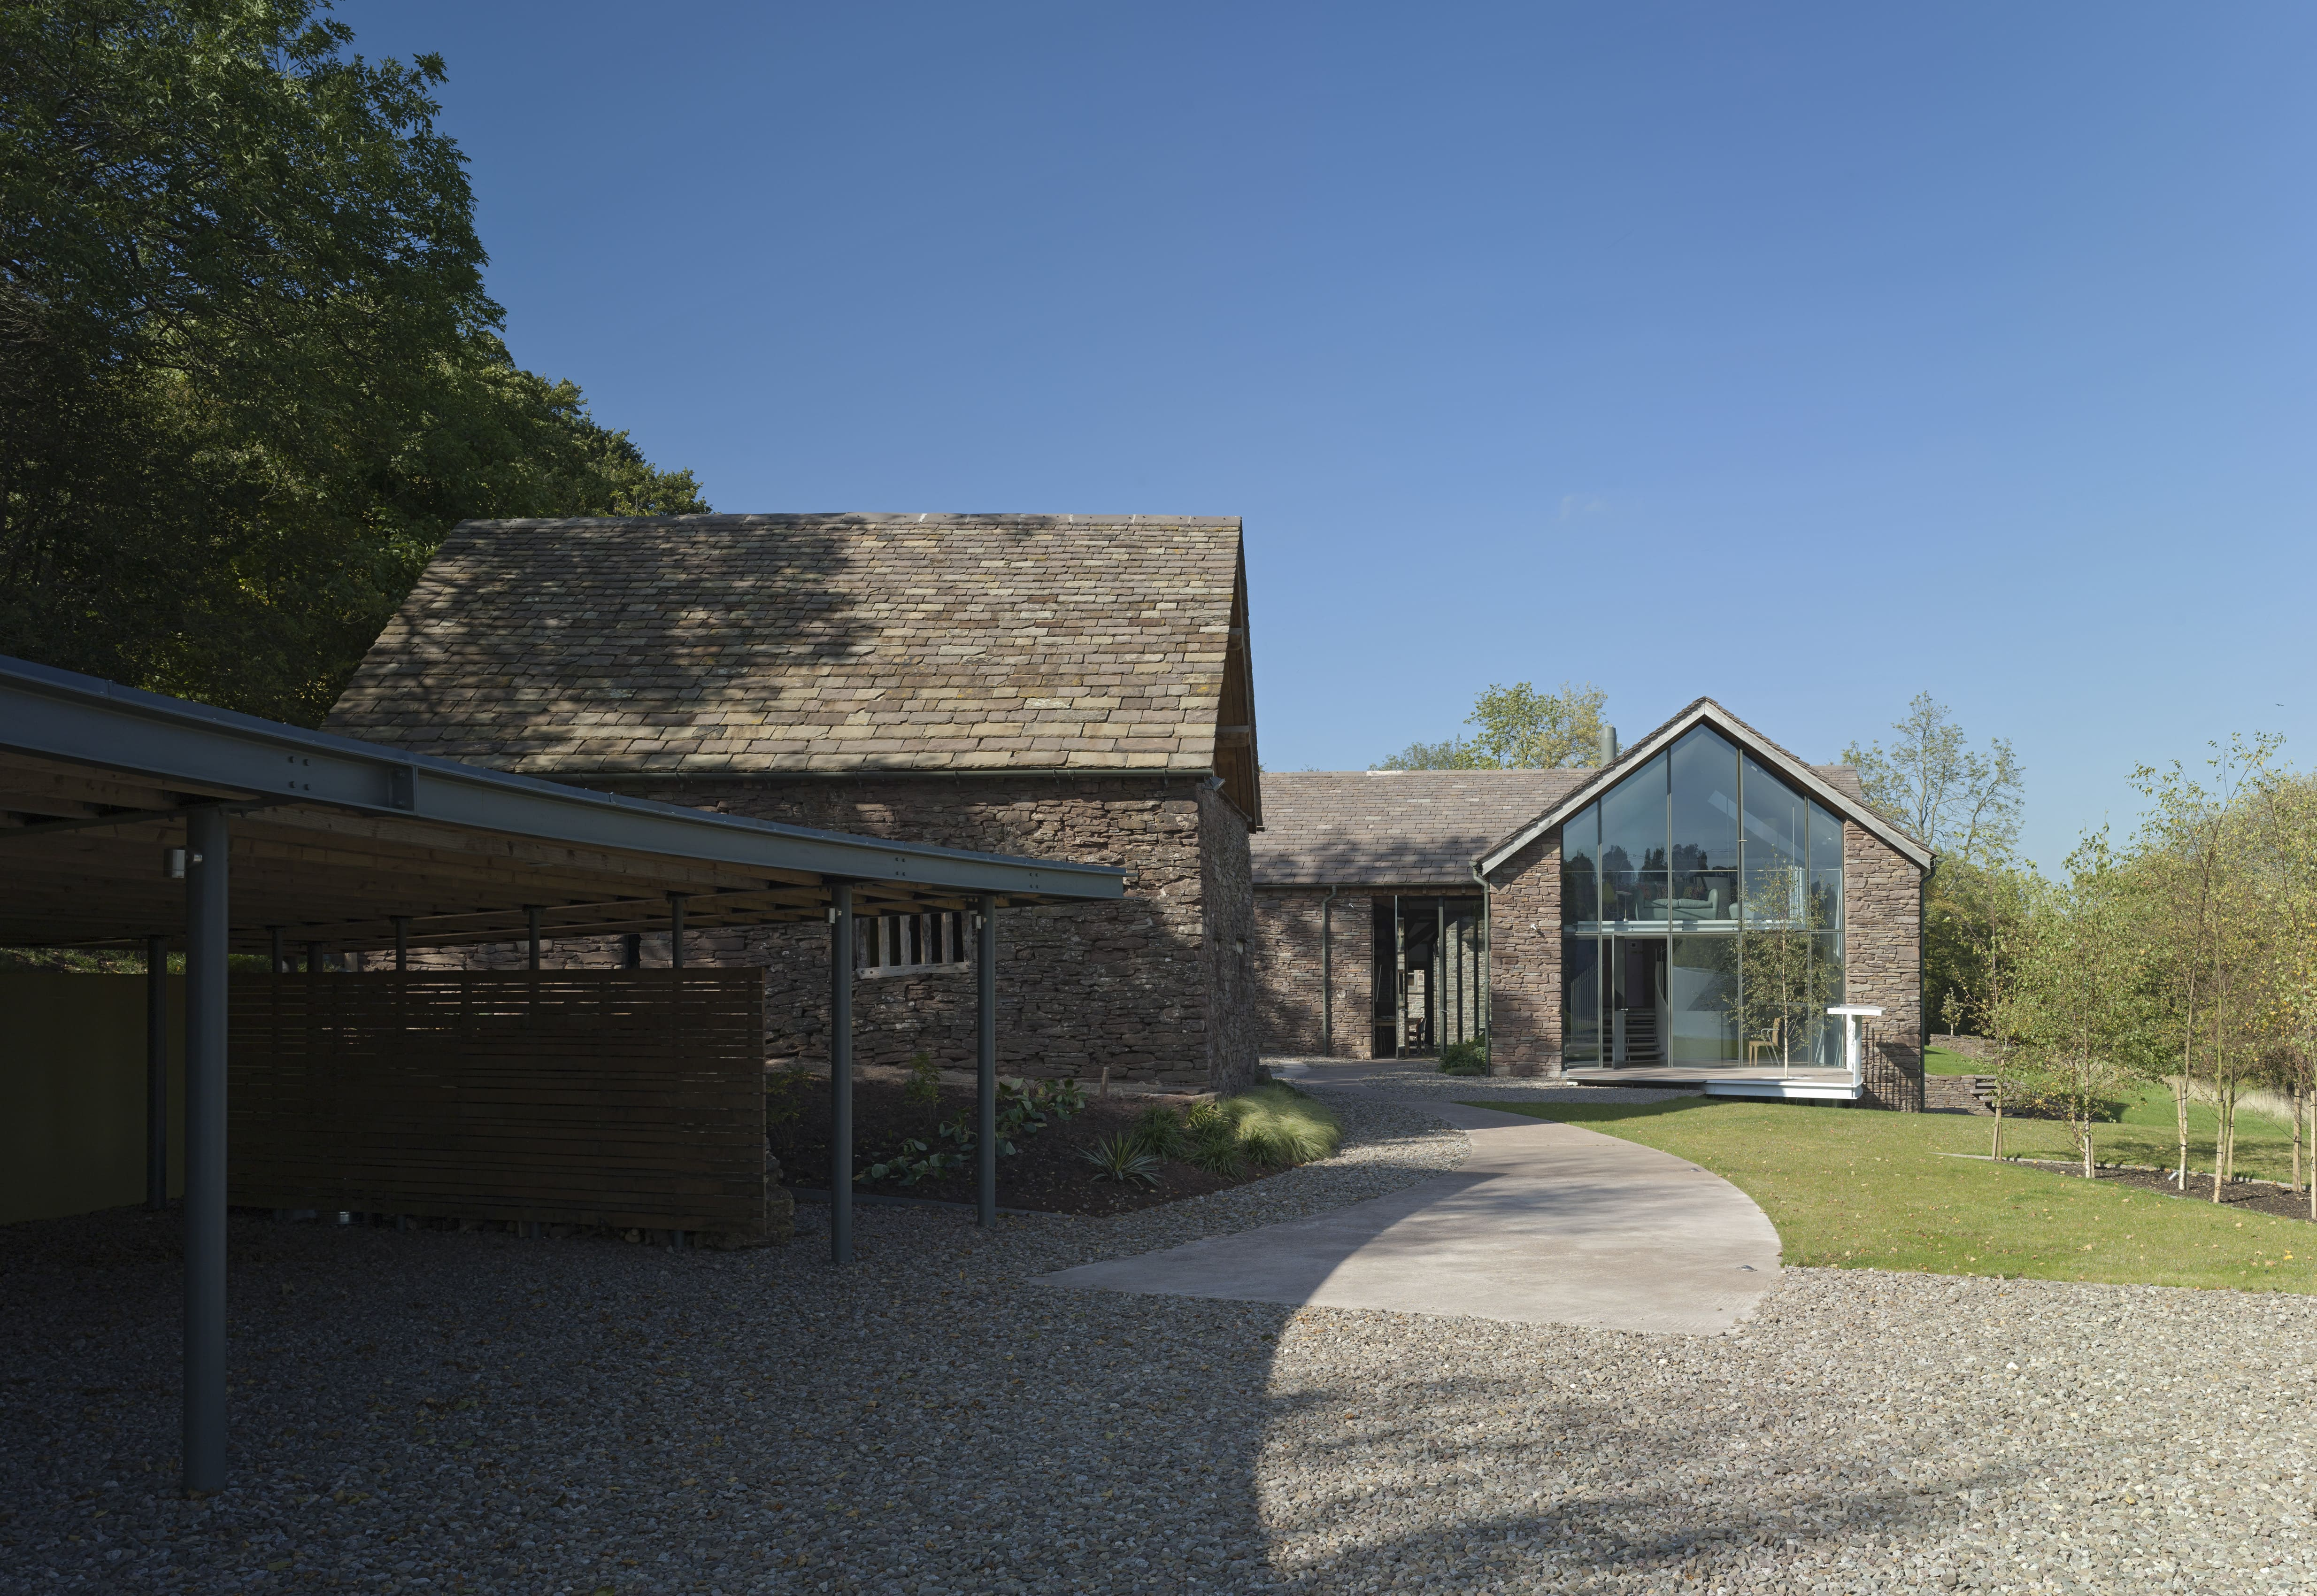 Barn Conversions Landscape Building And You Communion